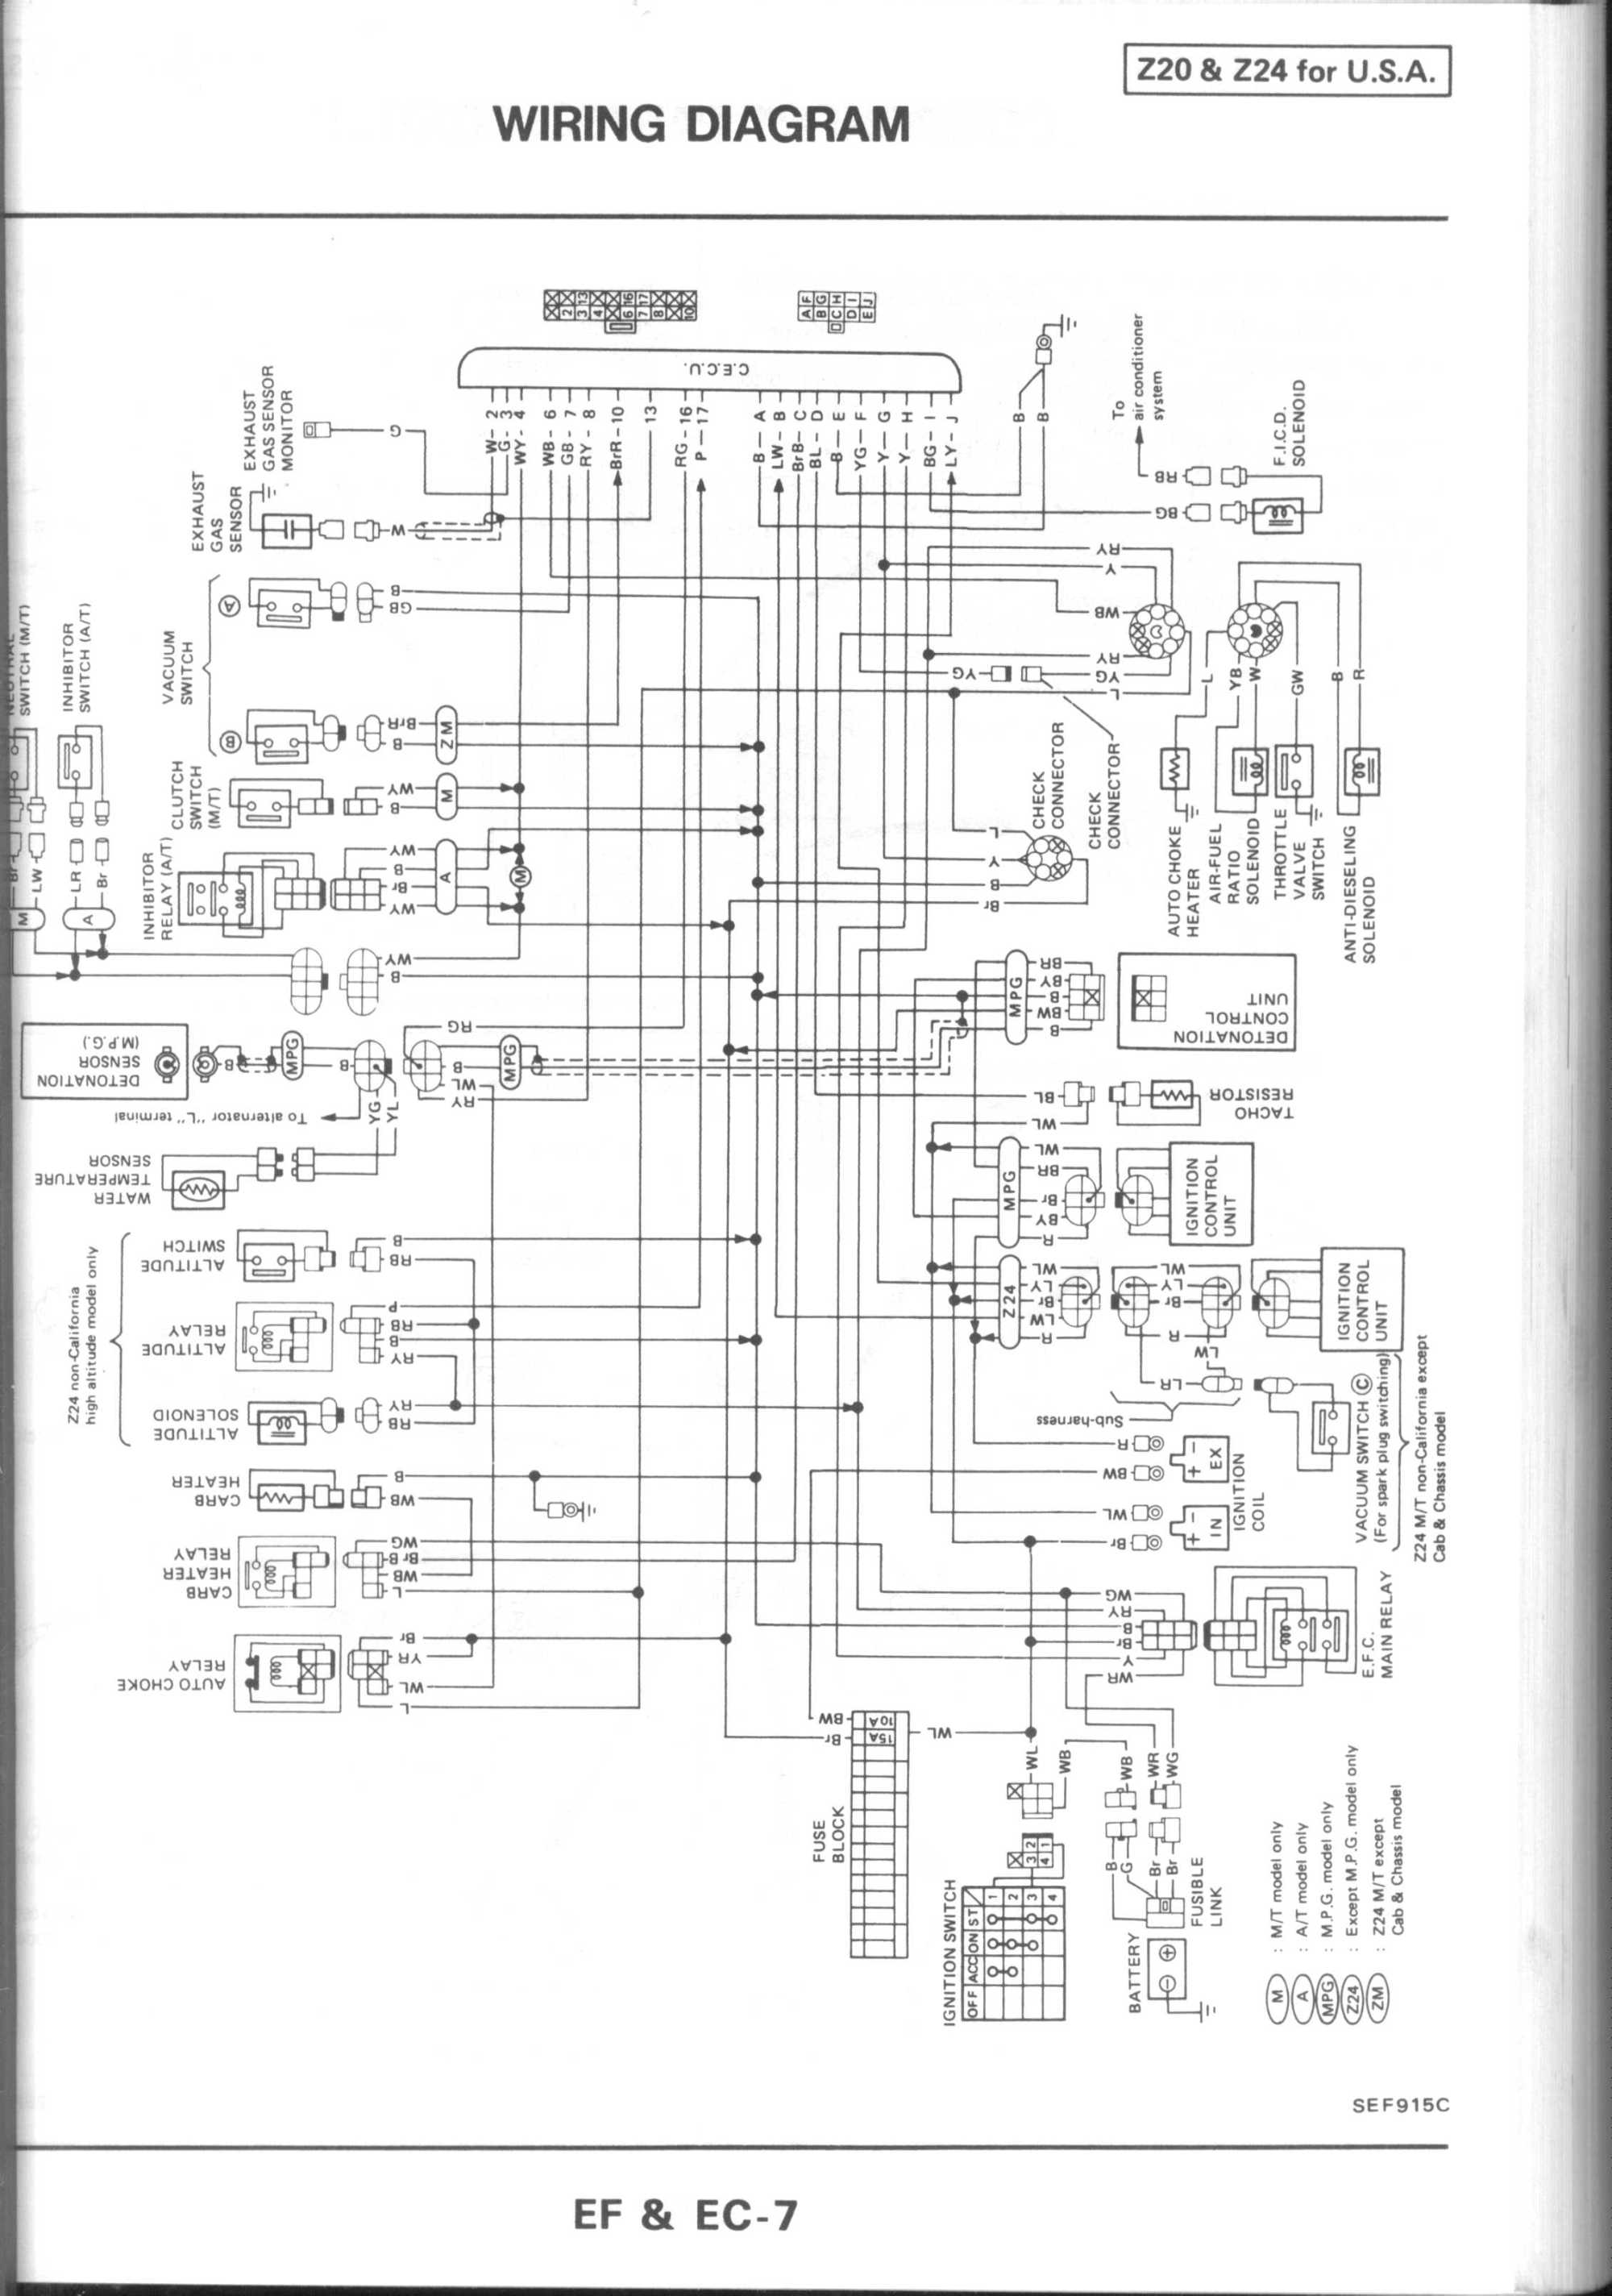 hight resolution of 1987 d21 fuse box data wiring diagram schema1987 nissan pathfinder fuse box simple wiring diagram schema